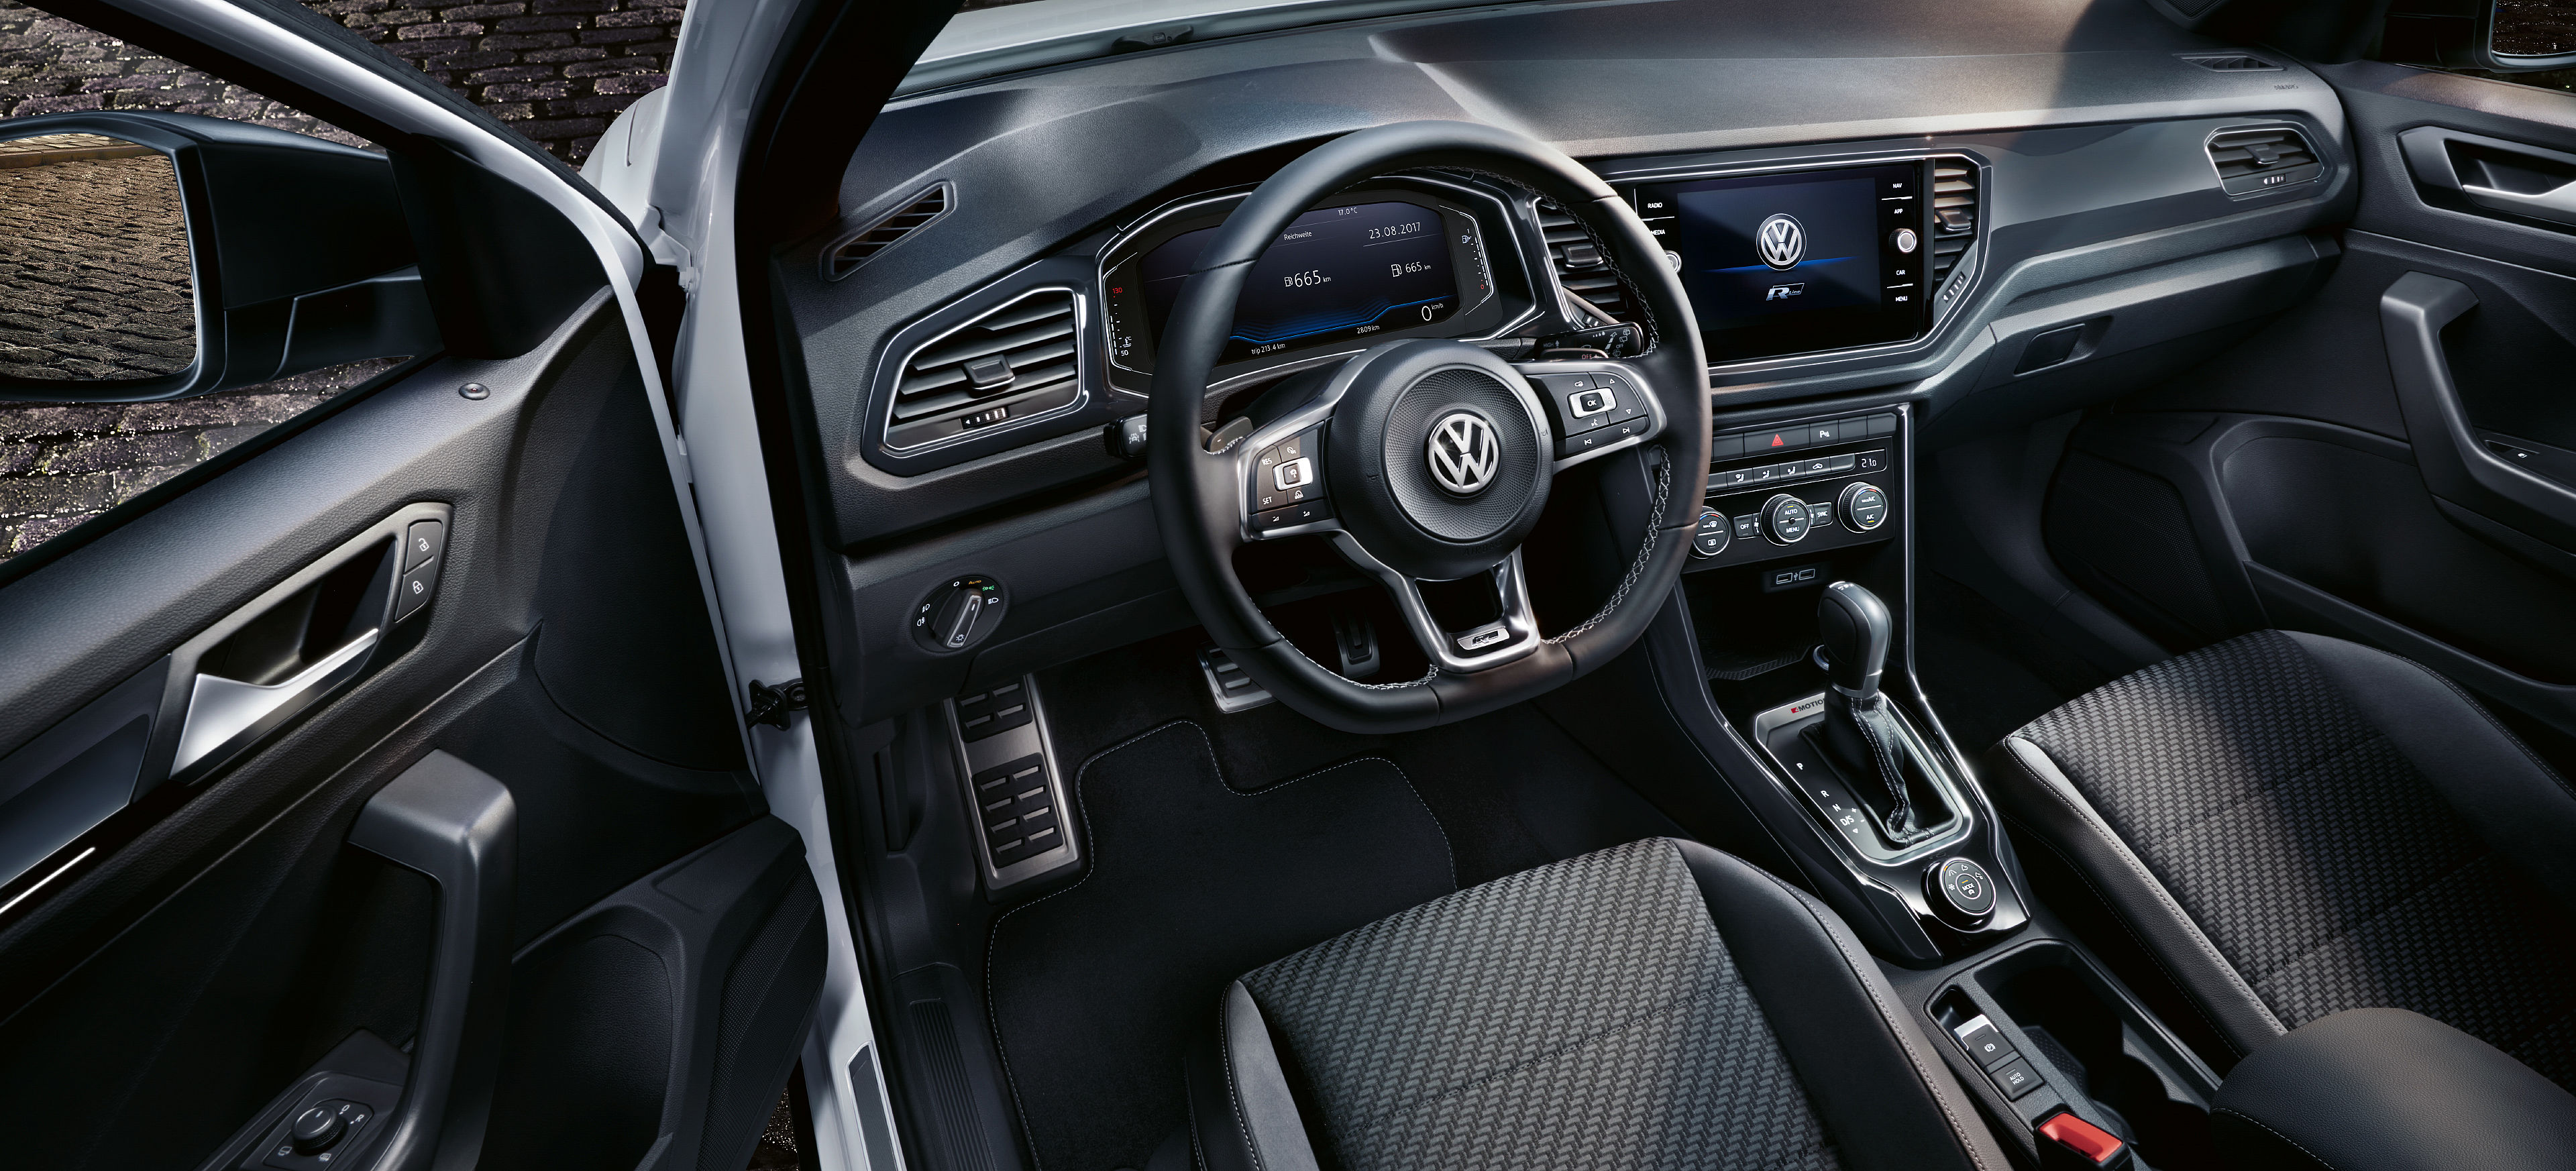 Vw t roc r line leasing angebote ohne anzahlung g nstige for Interieur t roc